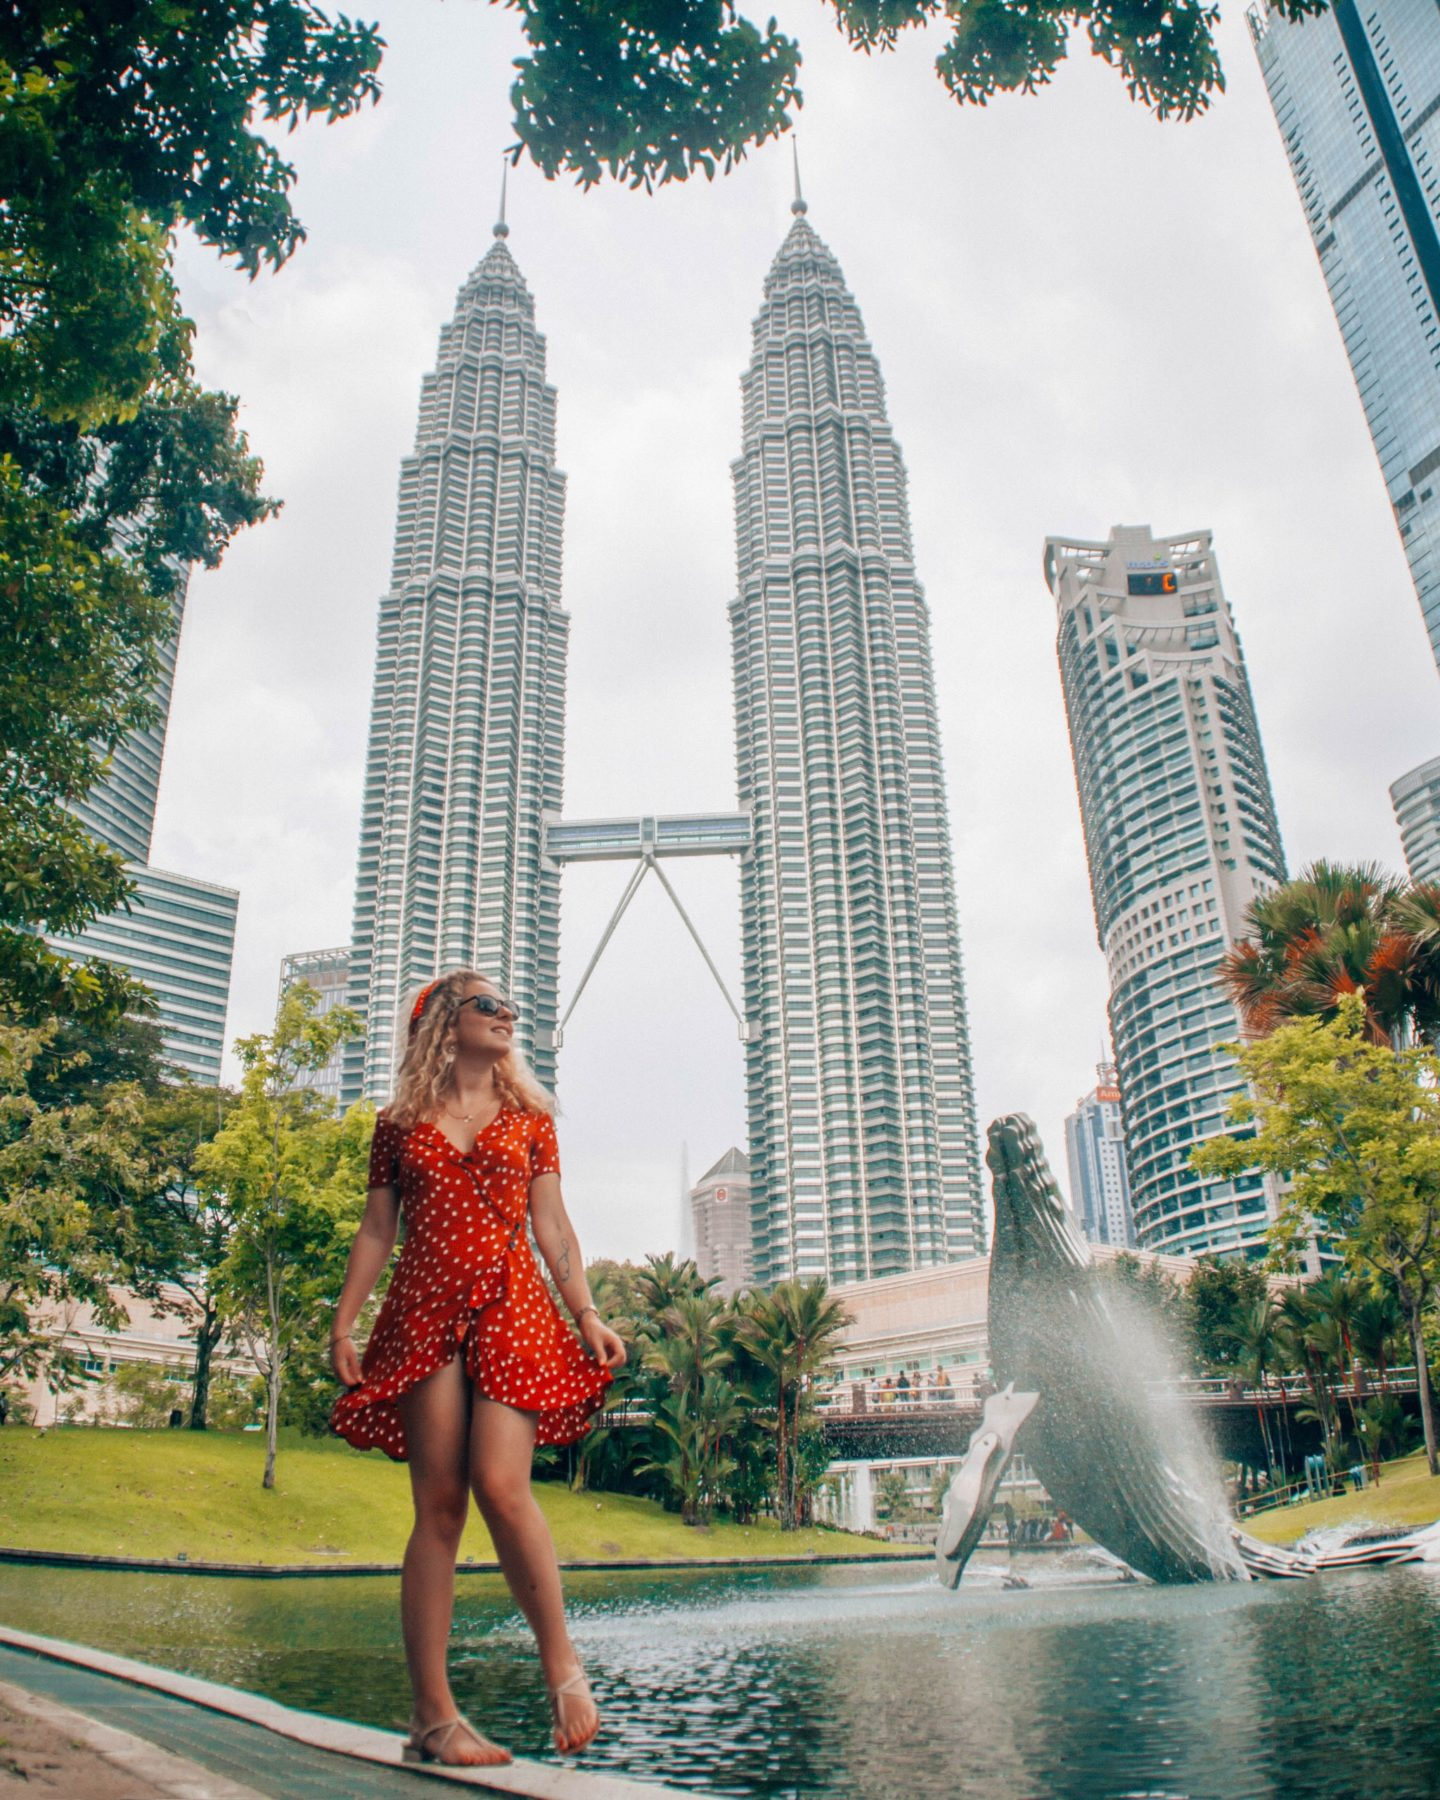 View on the Petrona Towers from KLCC Park in the center of the Malaysian capital